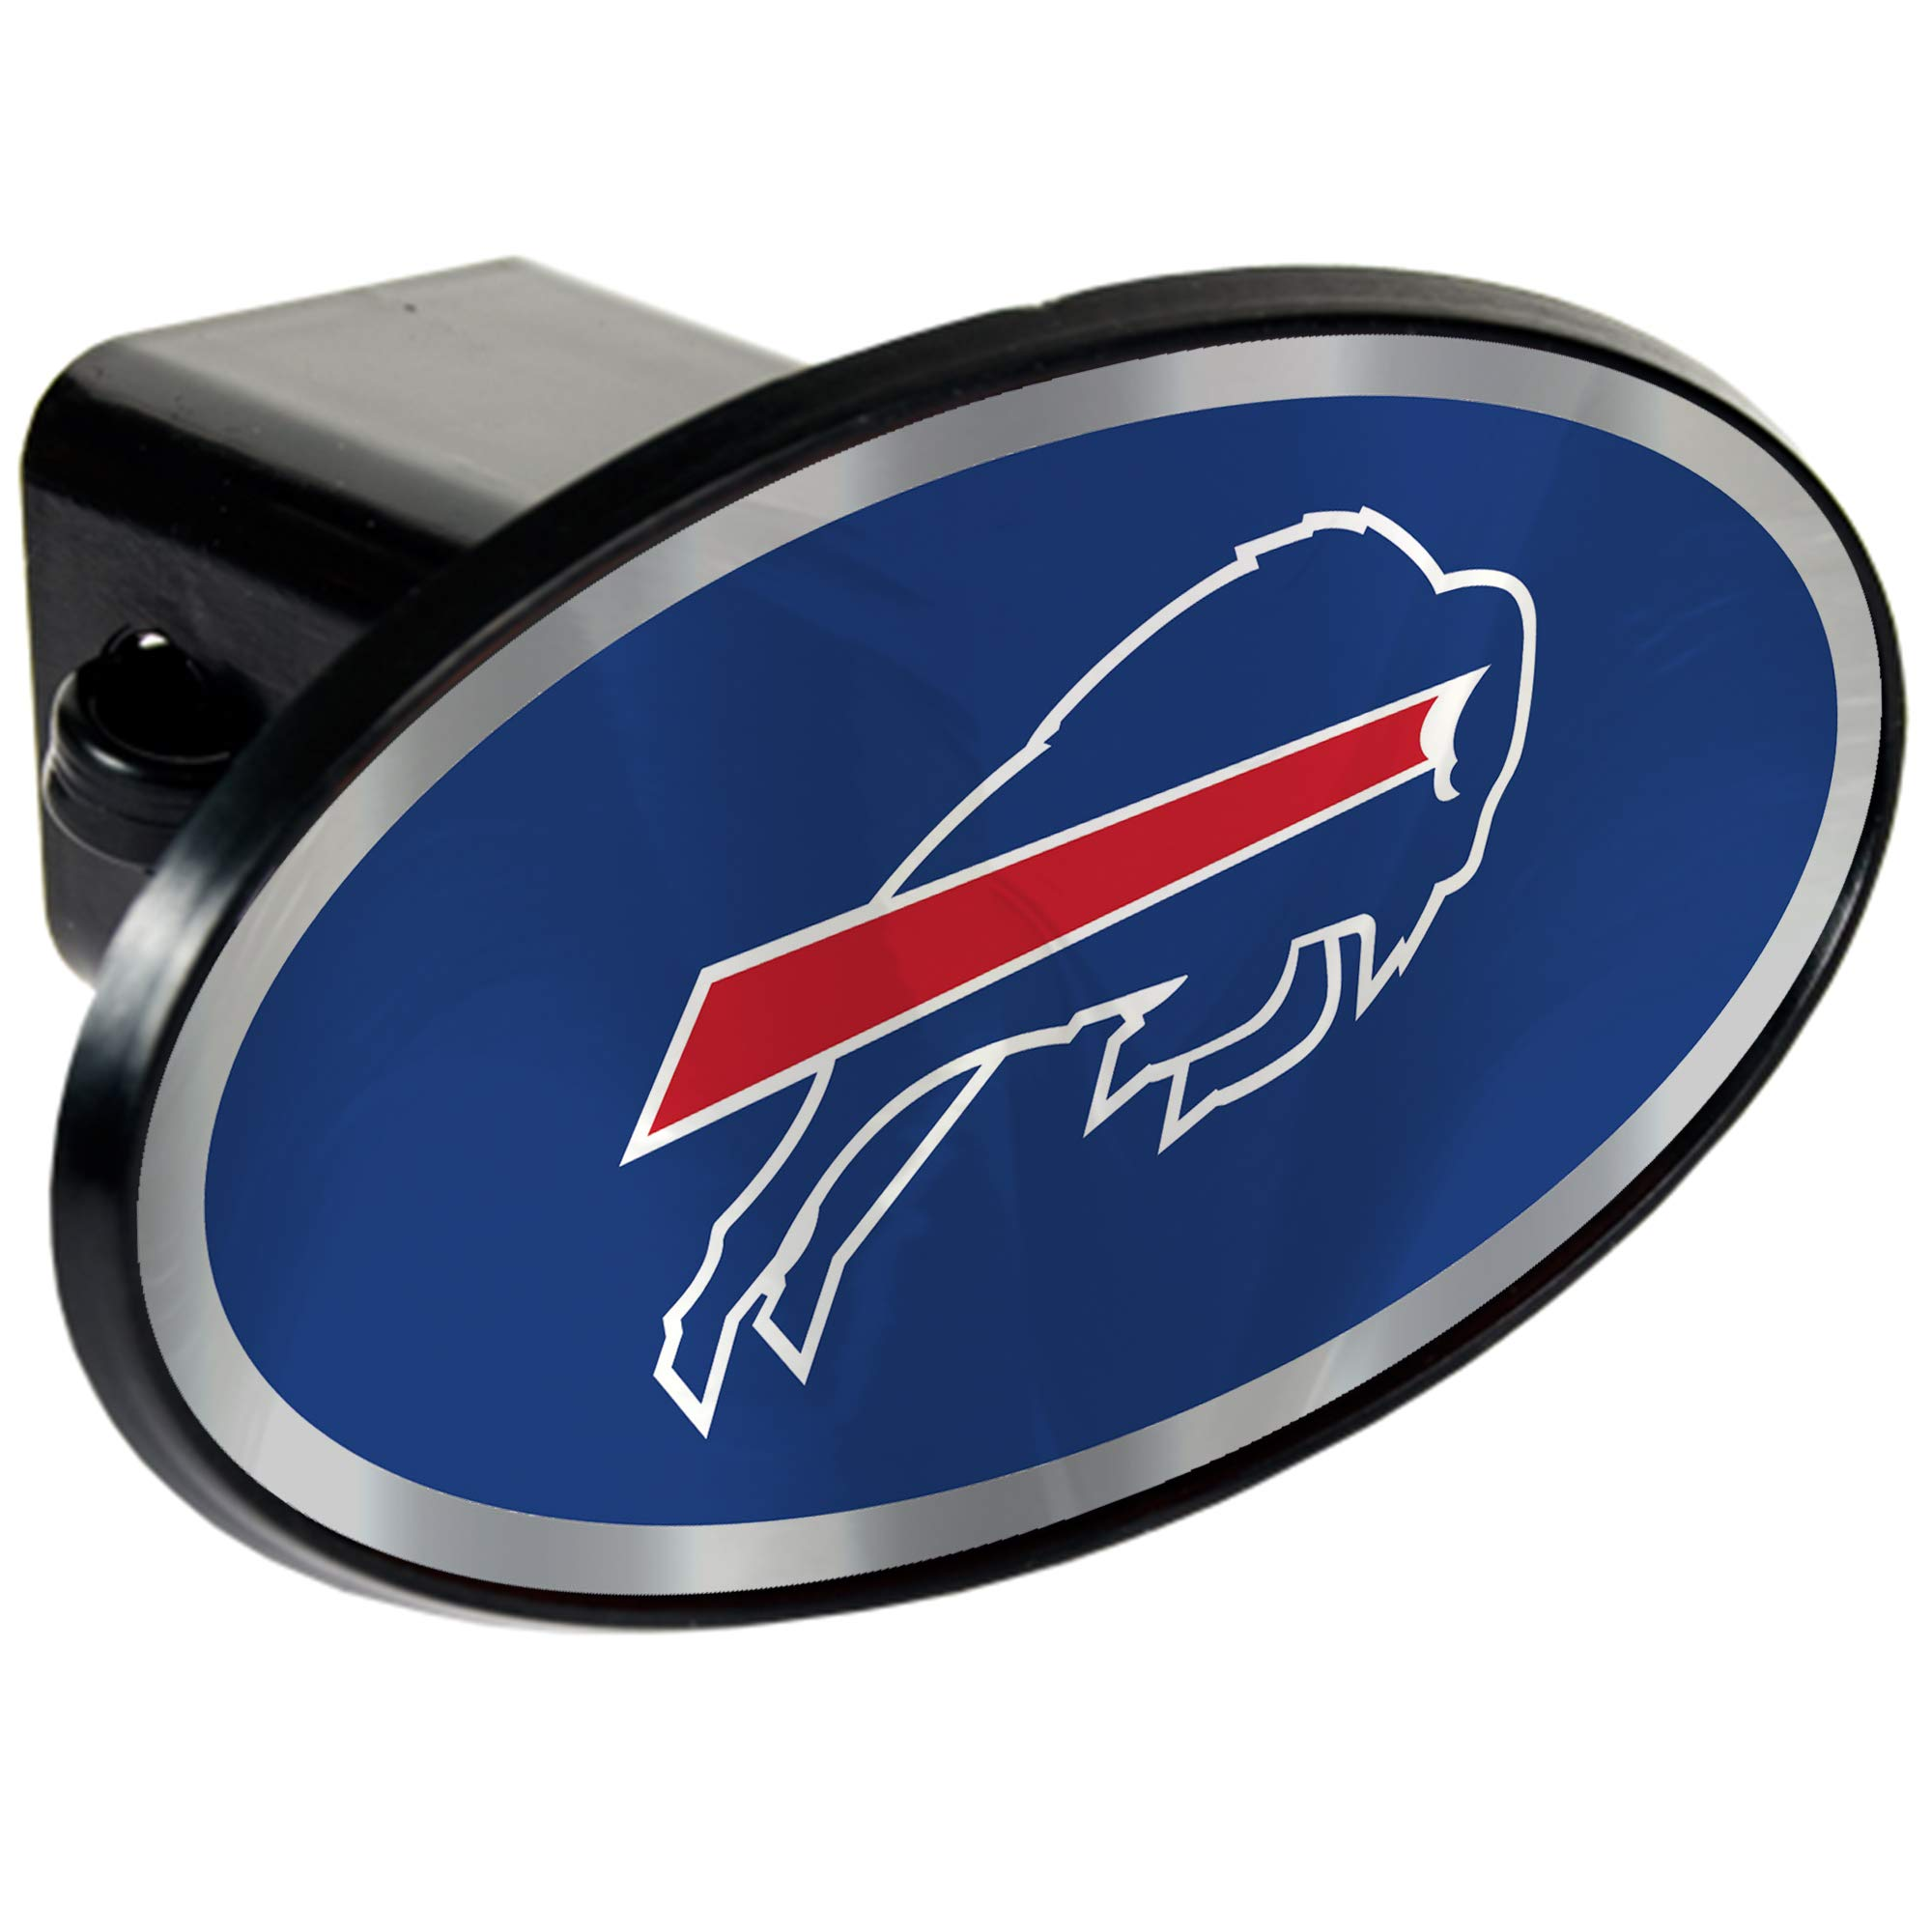 NFL Buffalo Bills Tow Hitch Cover Plug w/pin for Car-Truck-SUV 2'' Receiver by Quality Hitch Covers